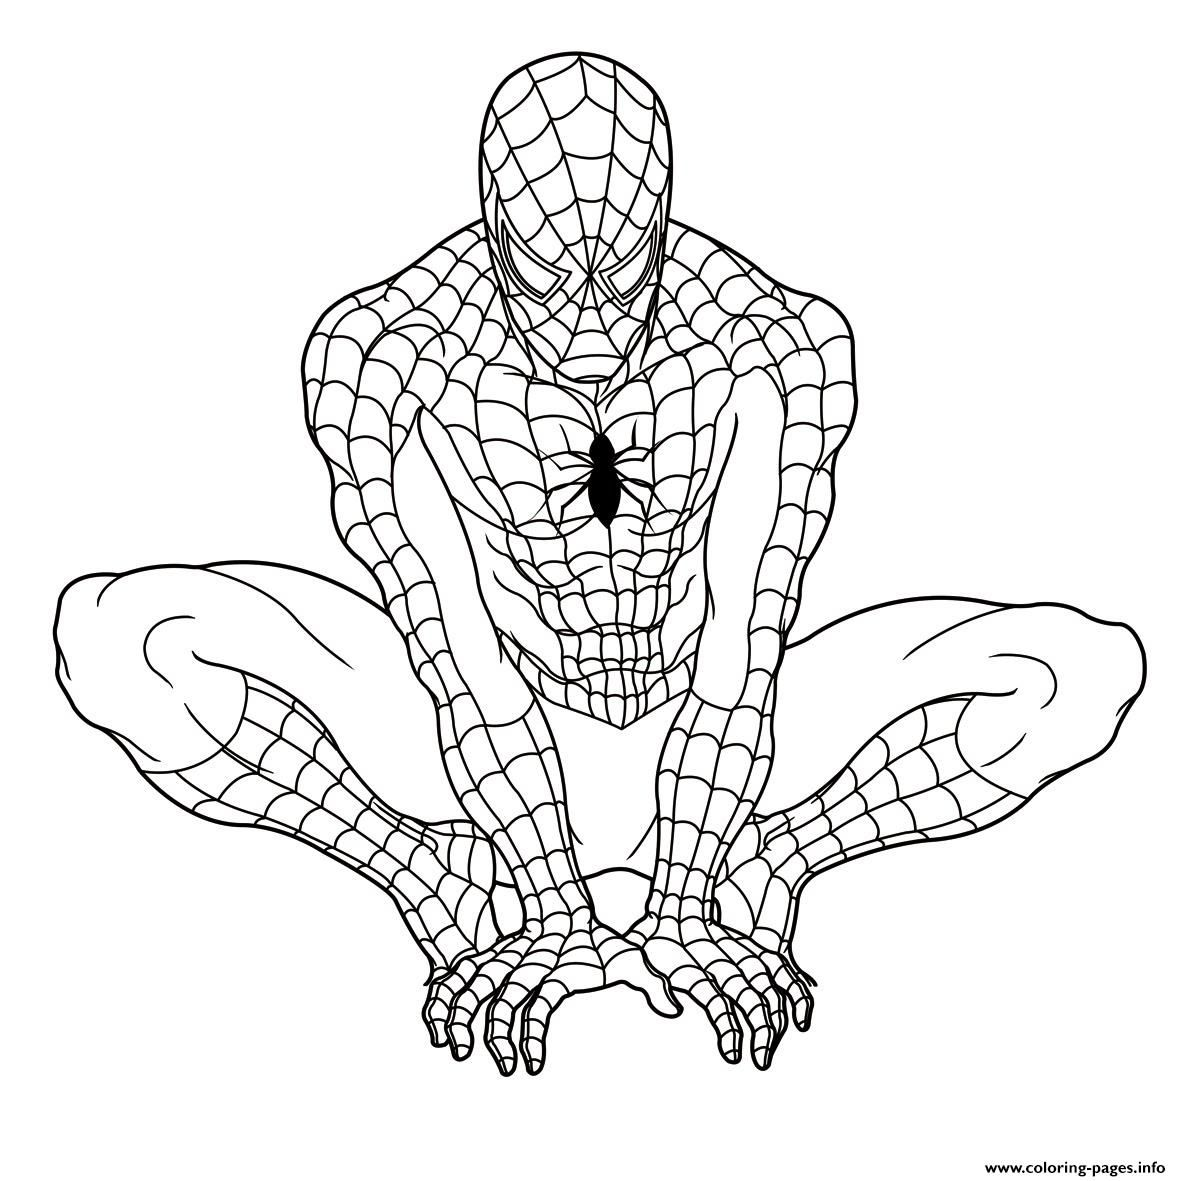 spectacular spiderman coloring pages - photo#13